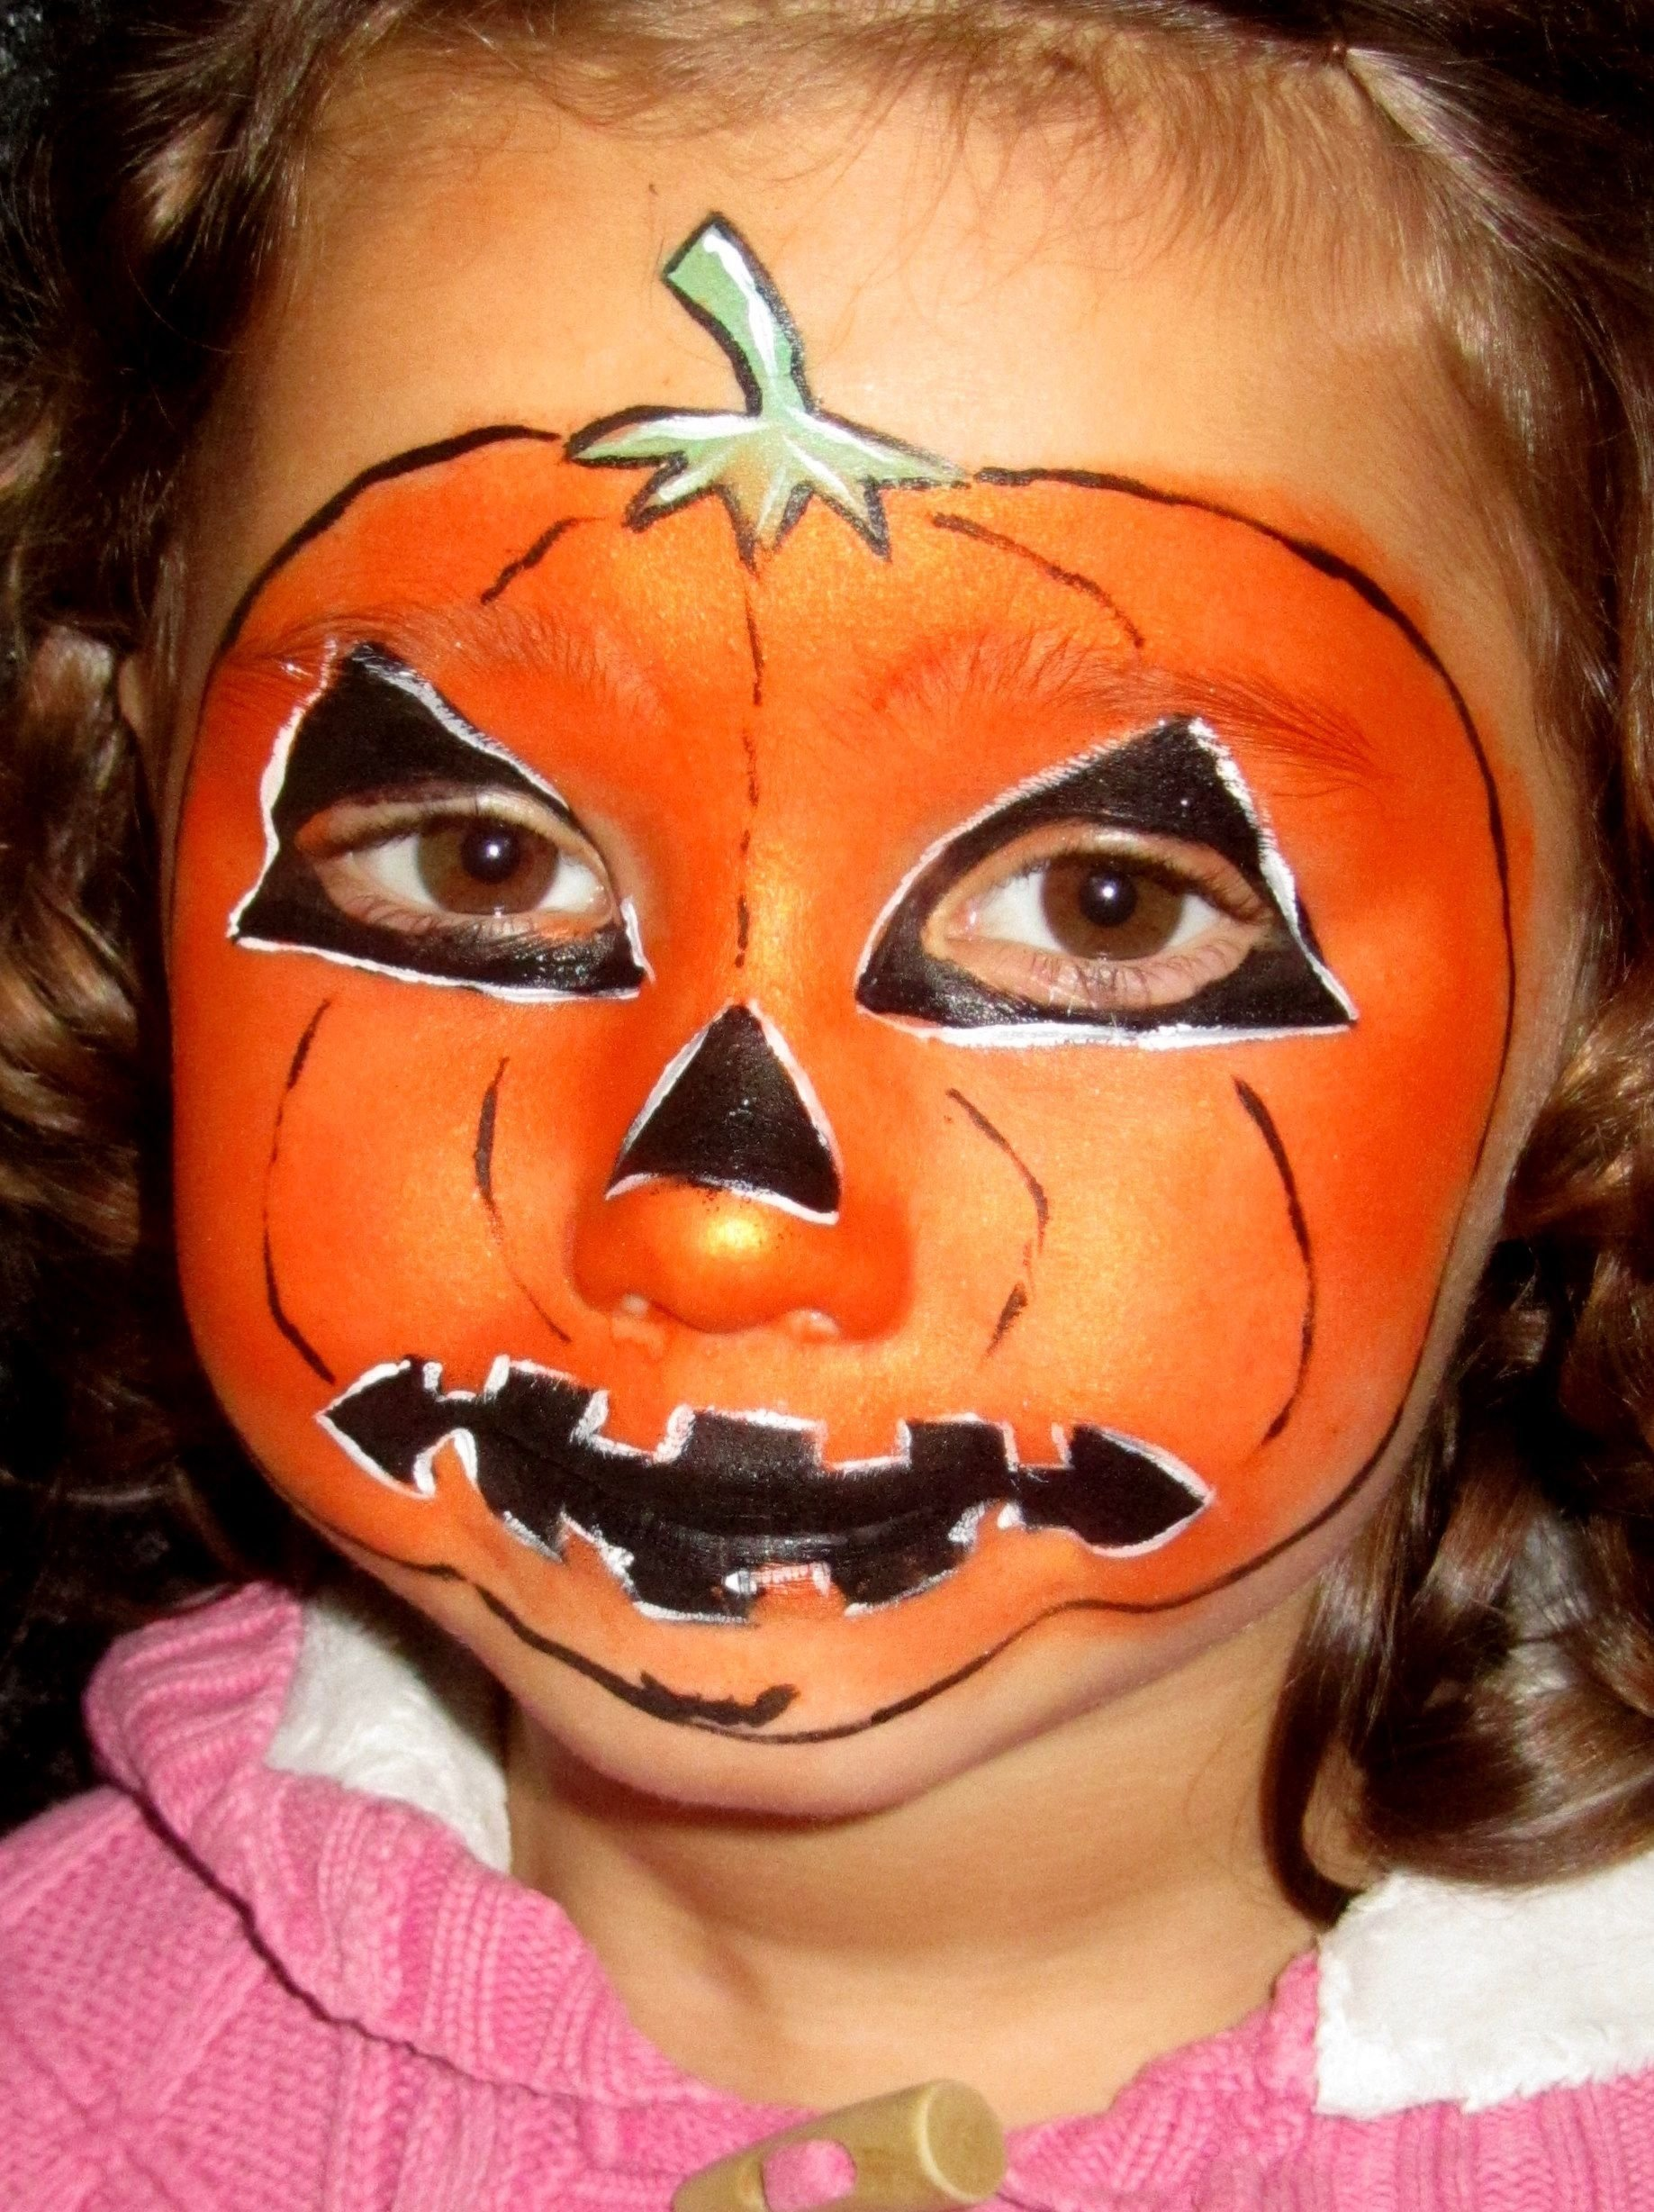 10 cute easy face painting ideas for halloween halloween face paint design ideas celebration halloween face